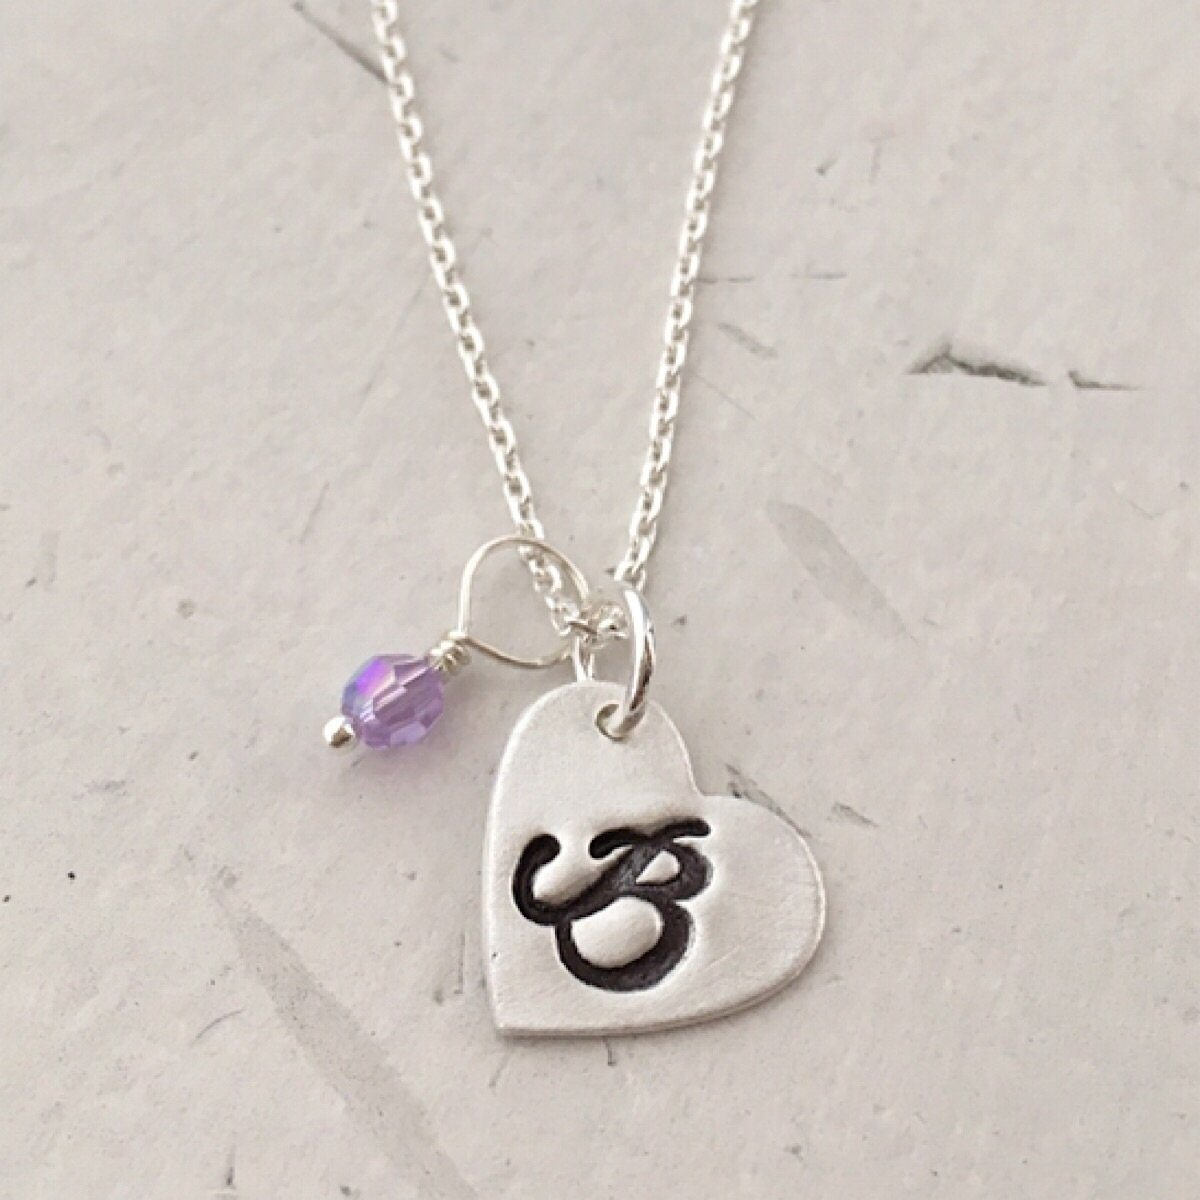 Lovely Hearts Necklace - IsabelleGraceJewelry